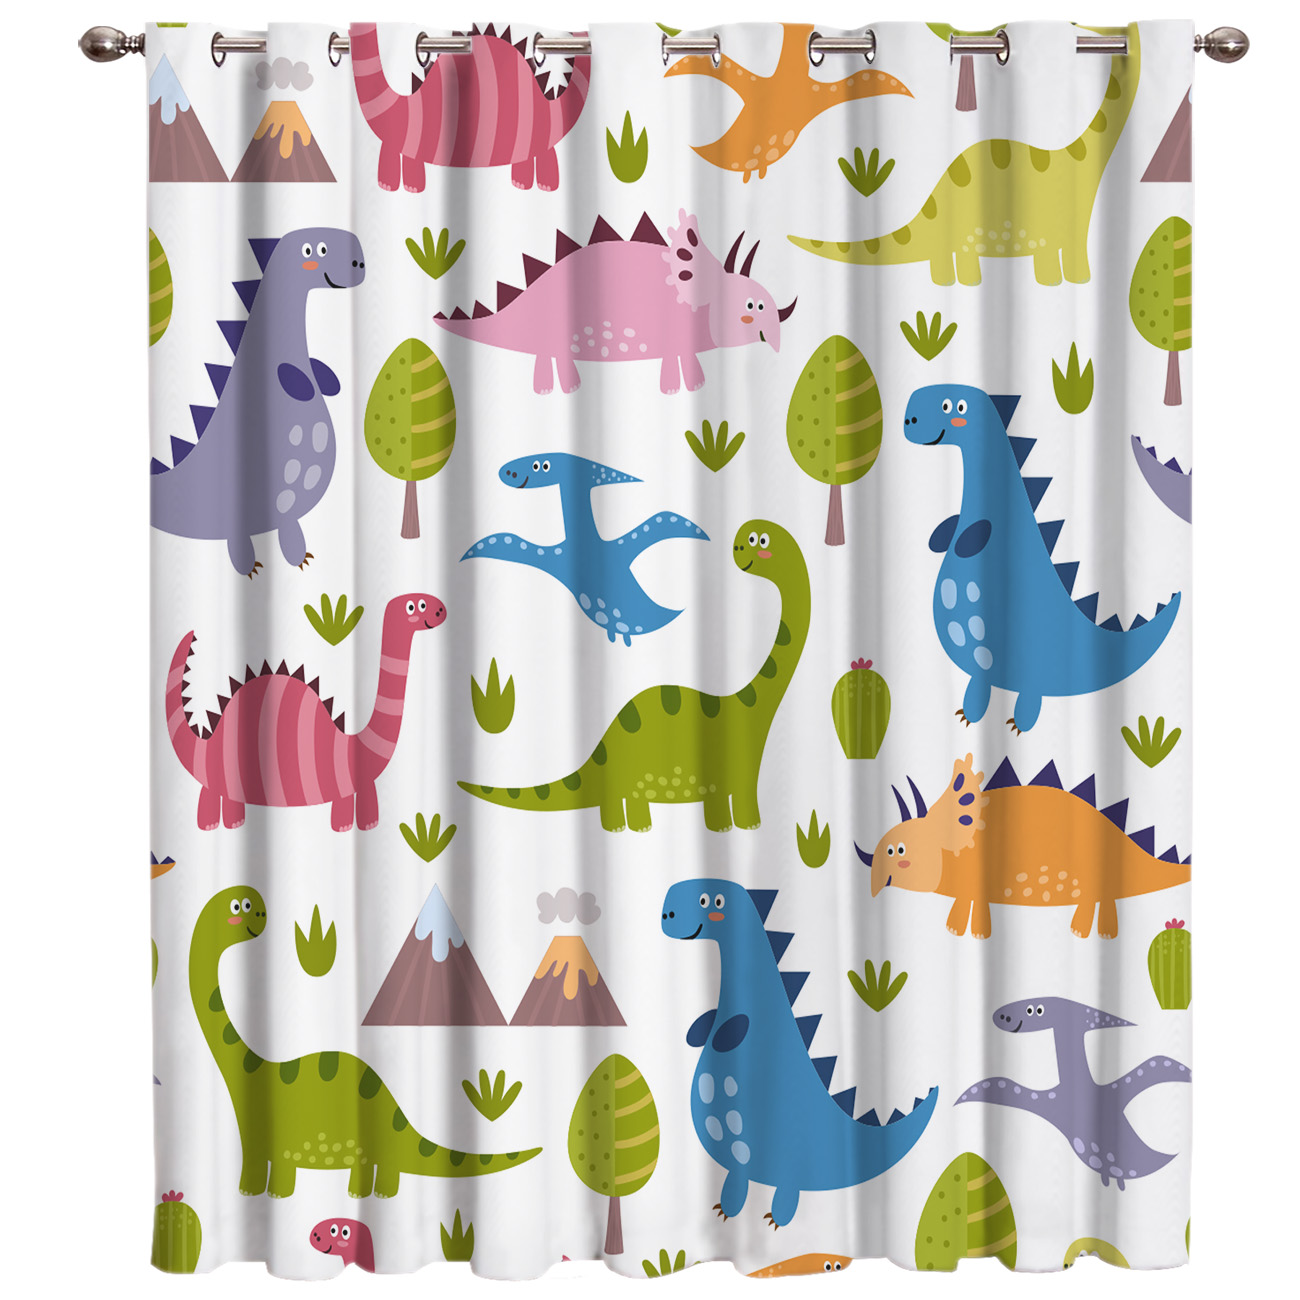 Lovely Dinosaur Patterns Room Curtains Large Window Curtain Lights Bathroom Fabric Decor Swag Window Treatment Sets Curtains